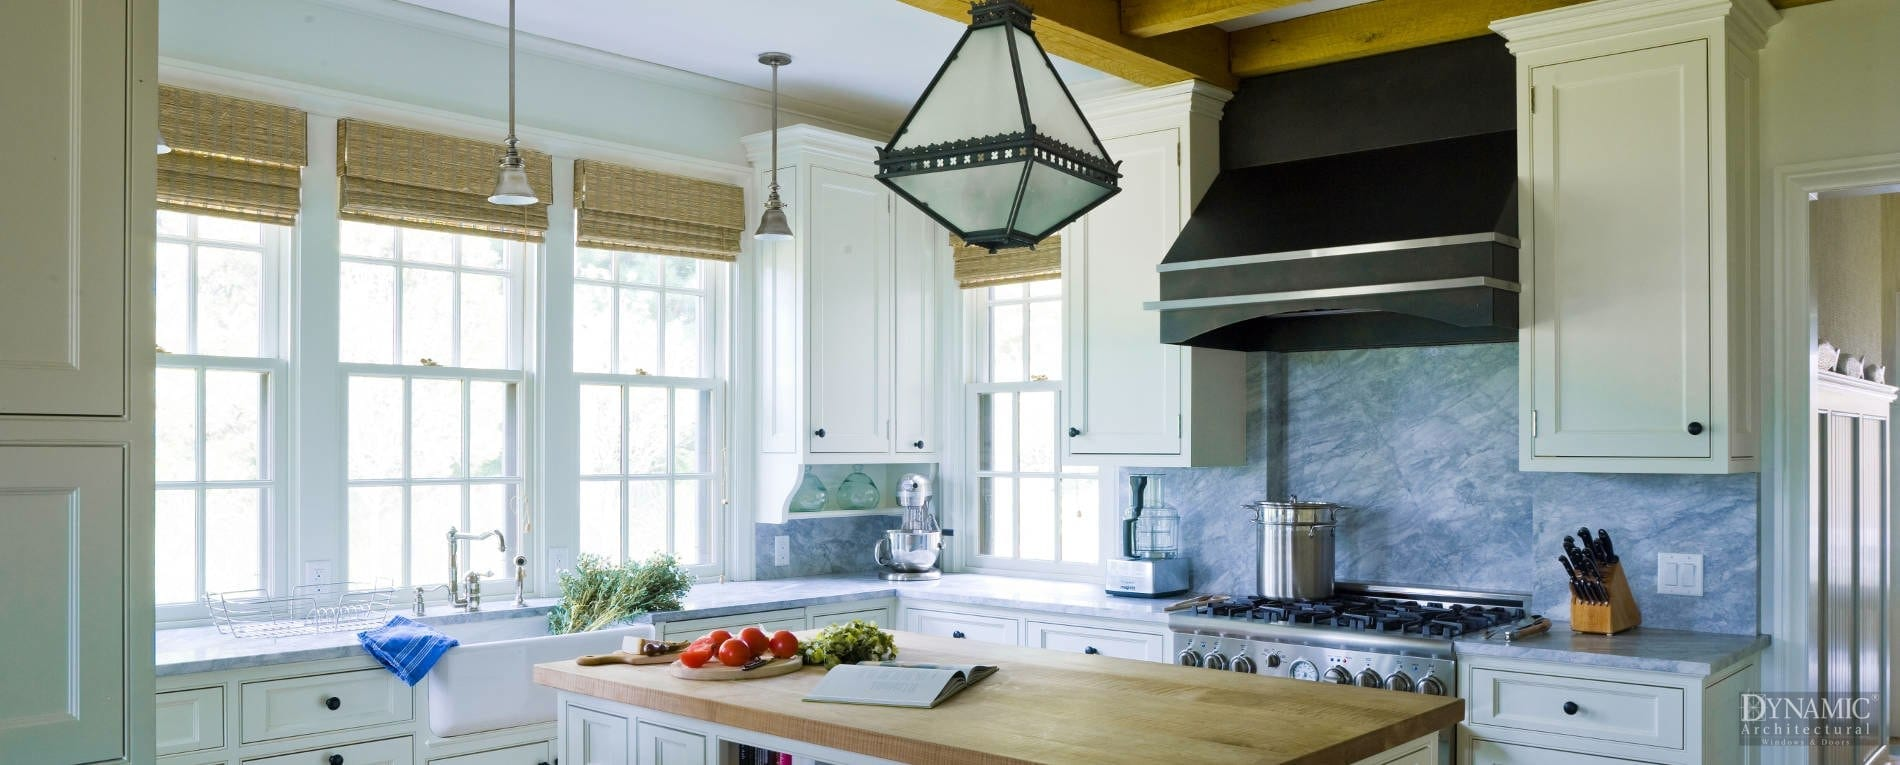 Traditional Double Hung Kitchen Windows